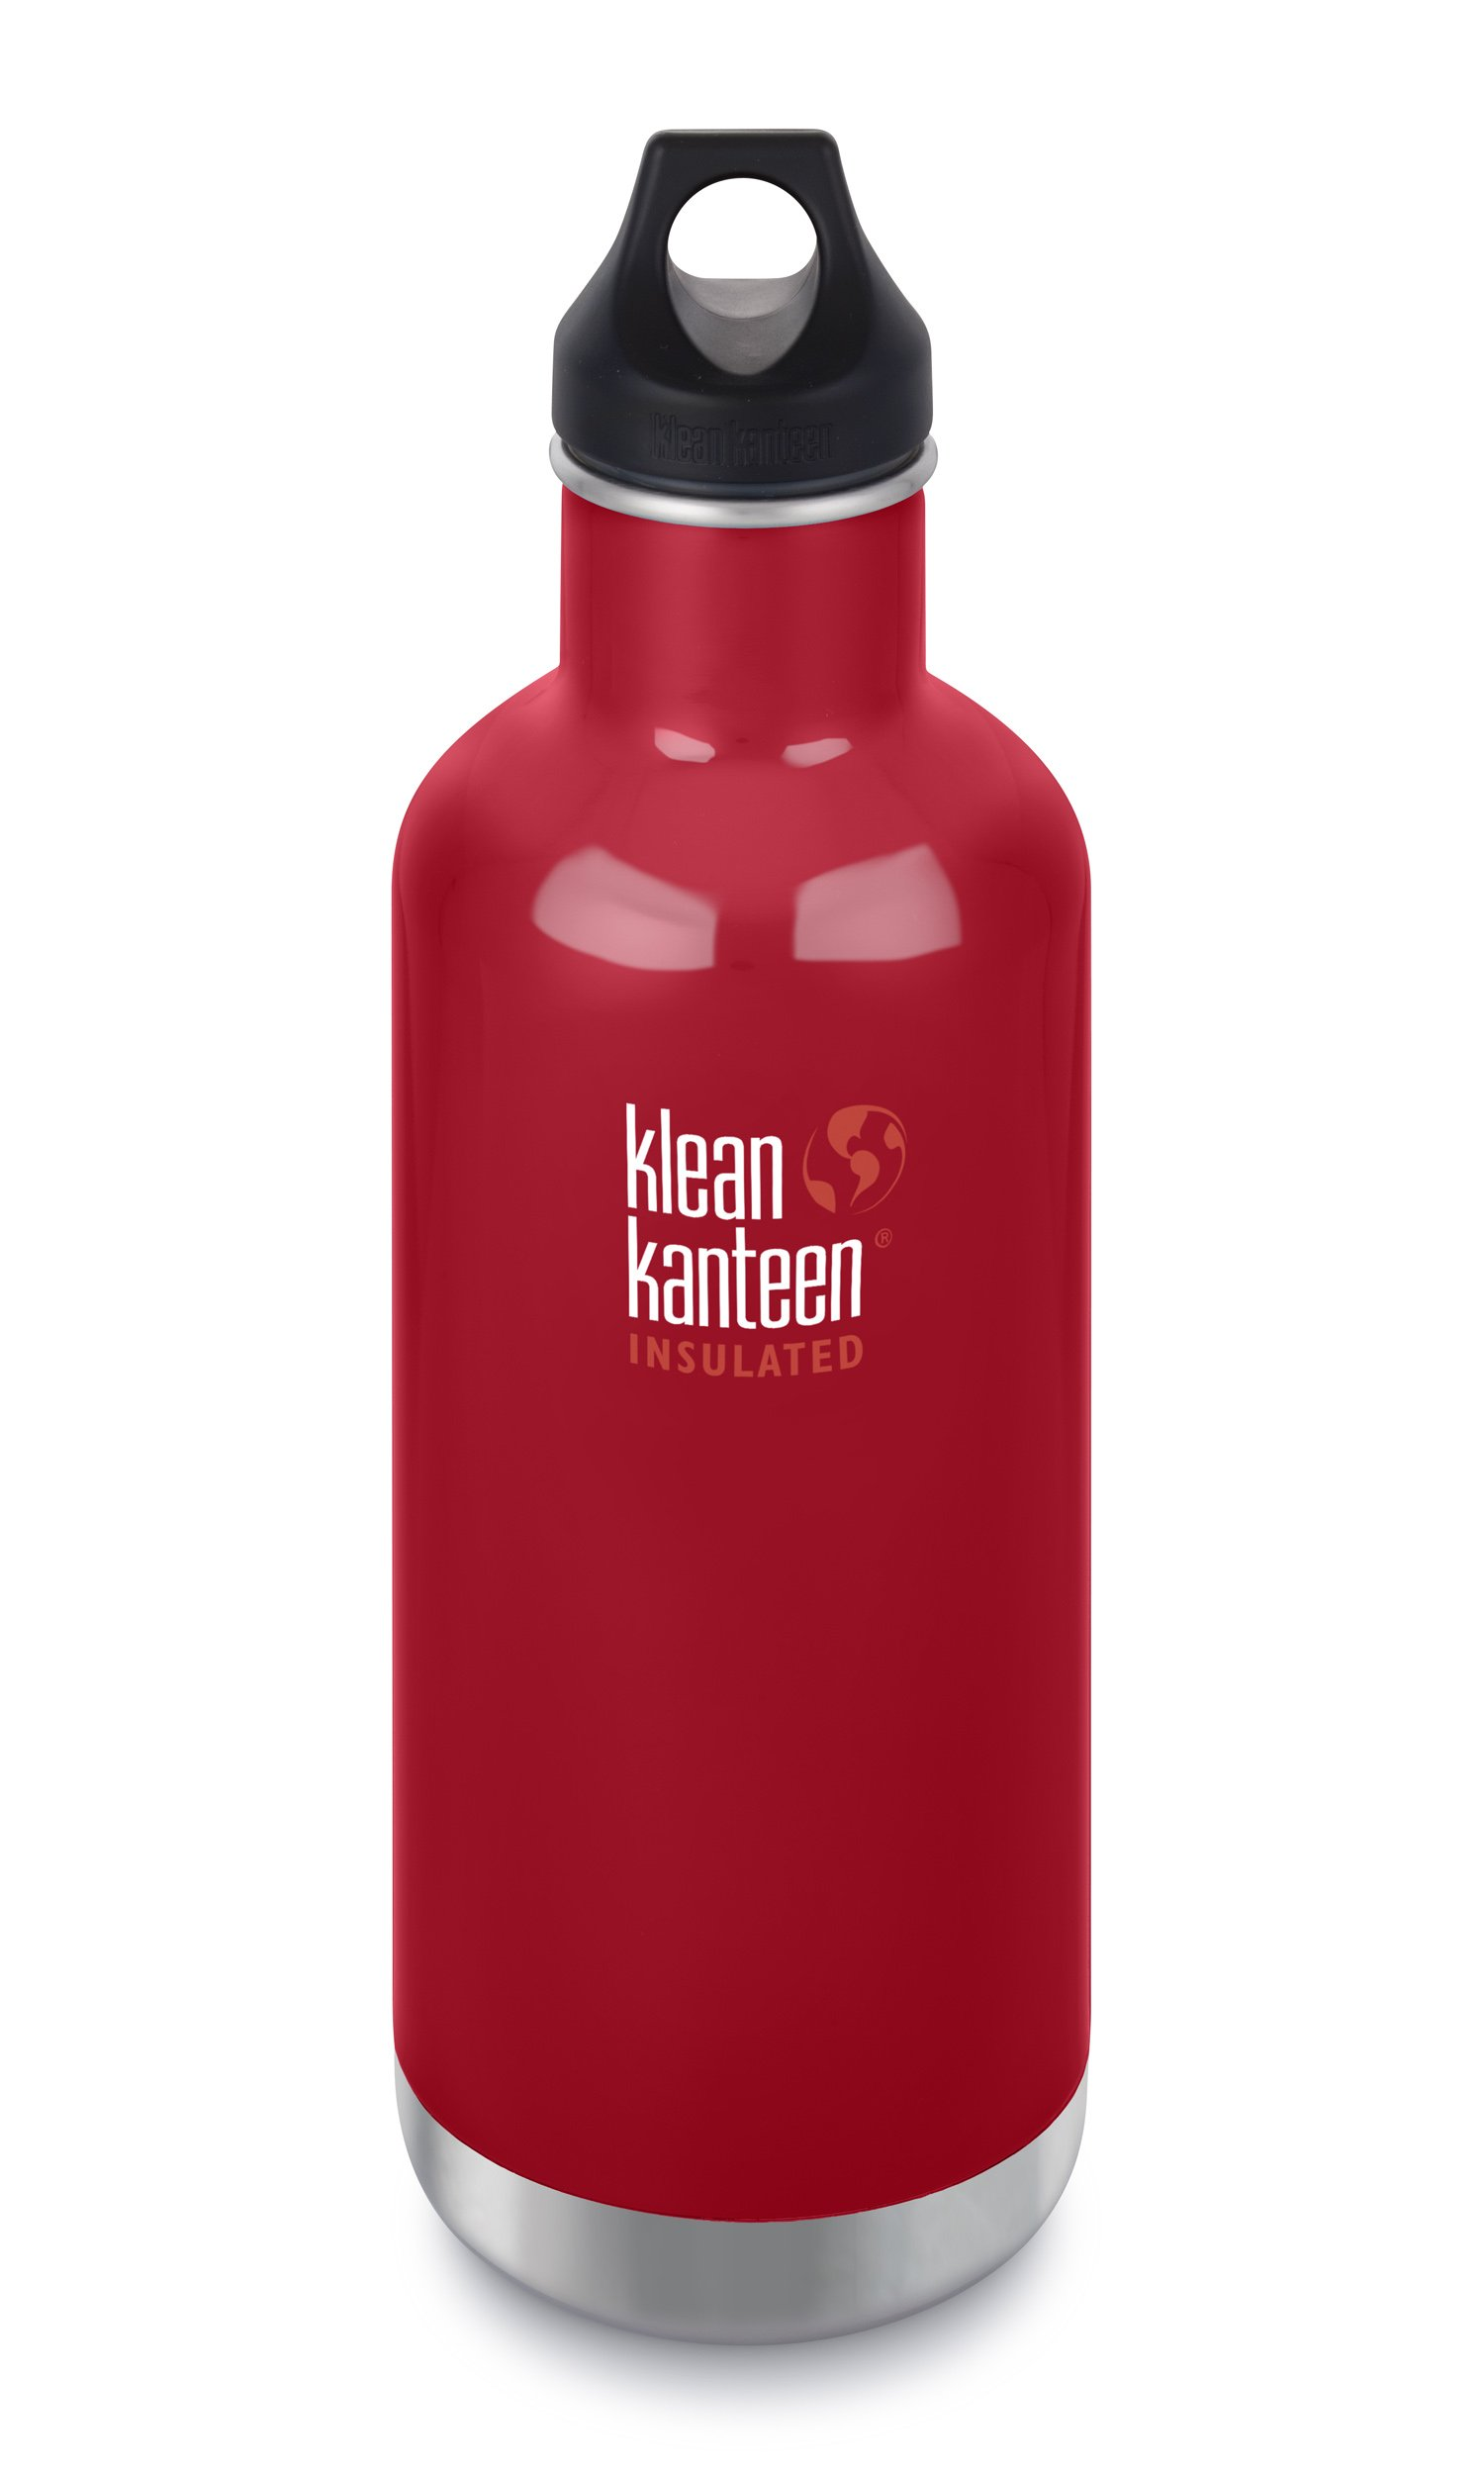 Klean Kanteen Classic Insulated Stainless Steel Water Bottle with Klean Coat and Leak Proof Loop Cap - 32oz - Mineral Red